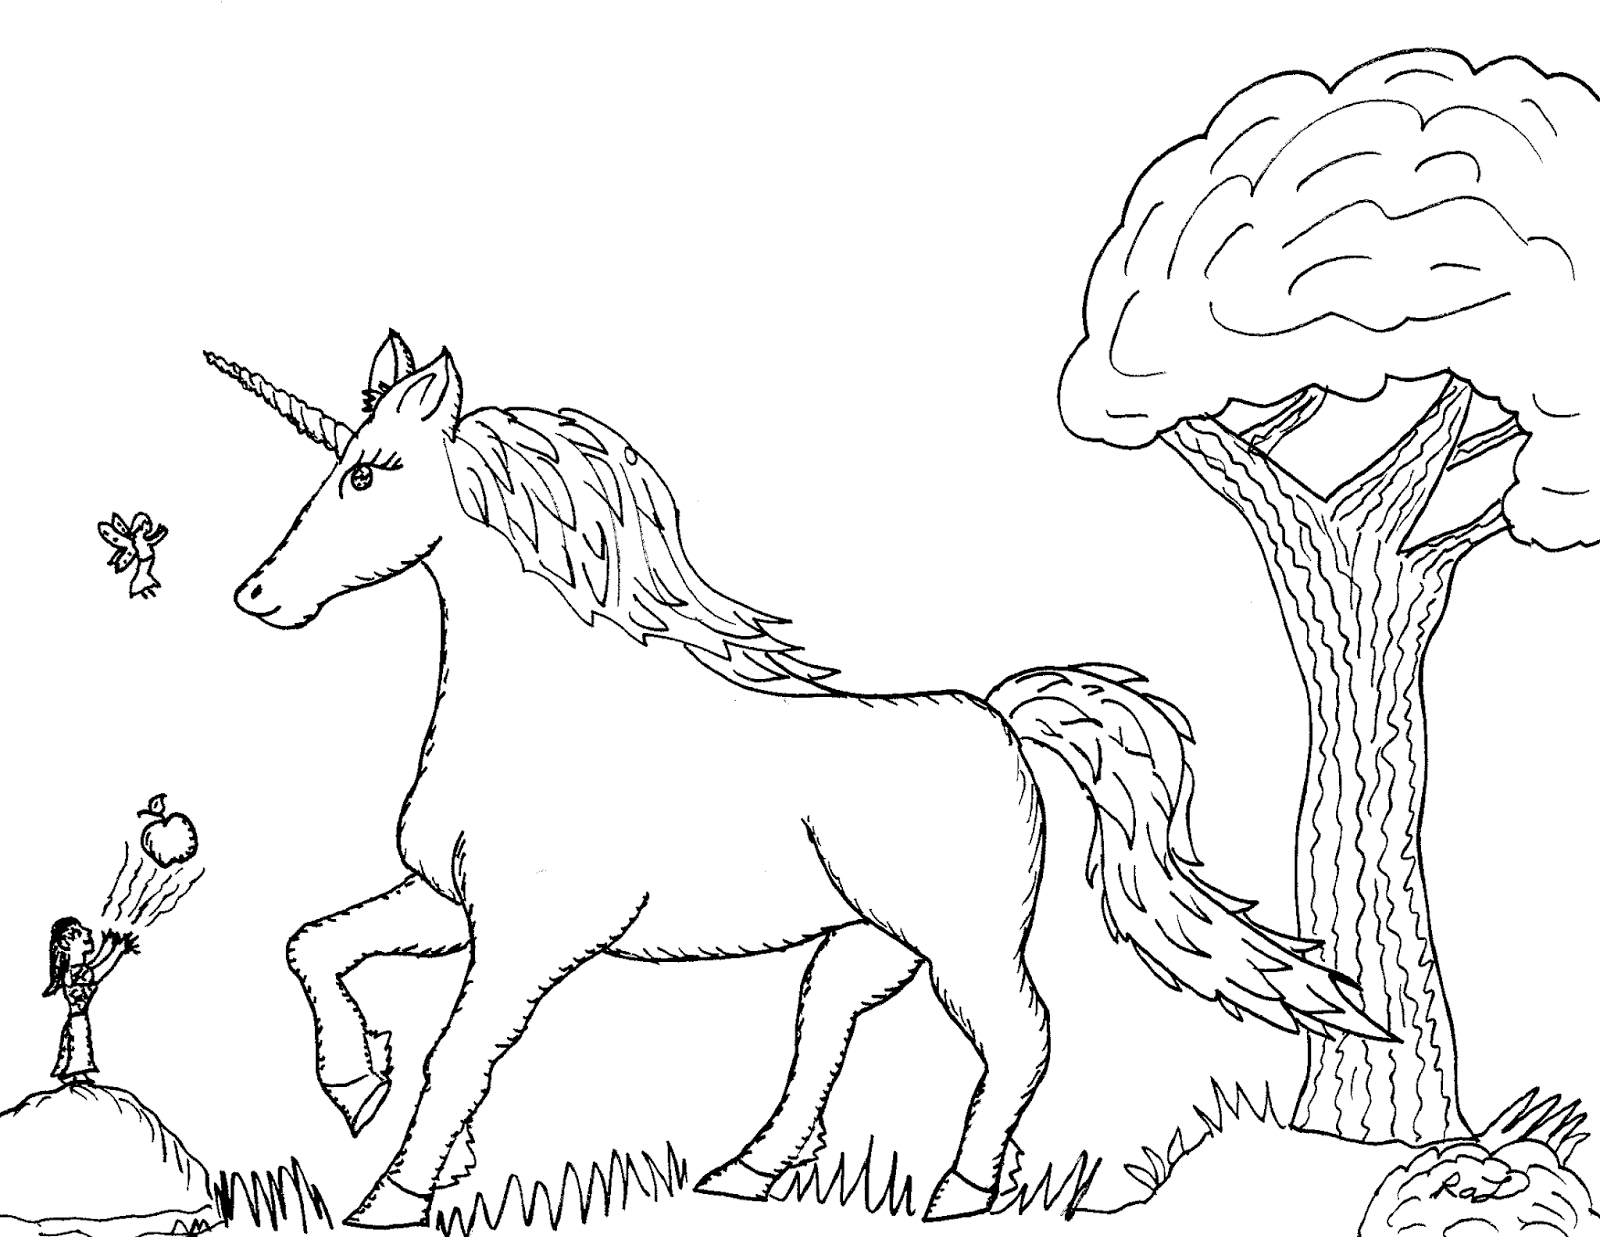 Robin\'s Great Coloring Pages: Unicorn, Elf, and Fairy